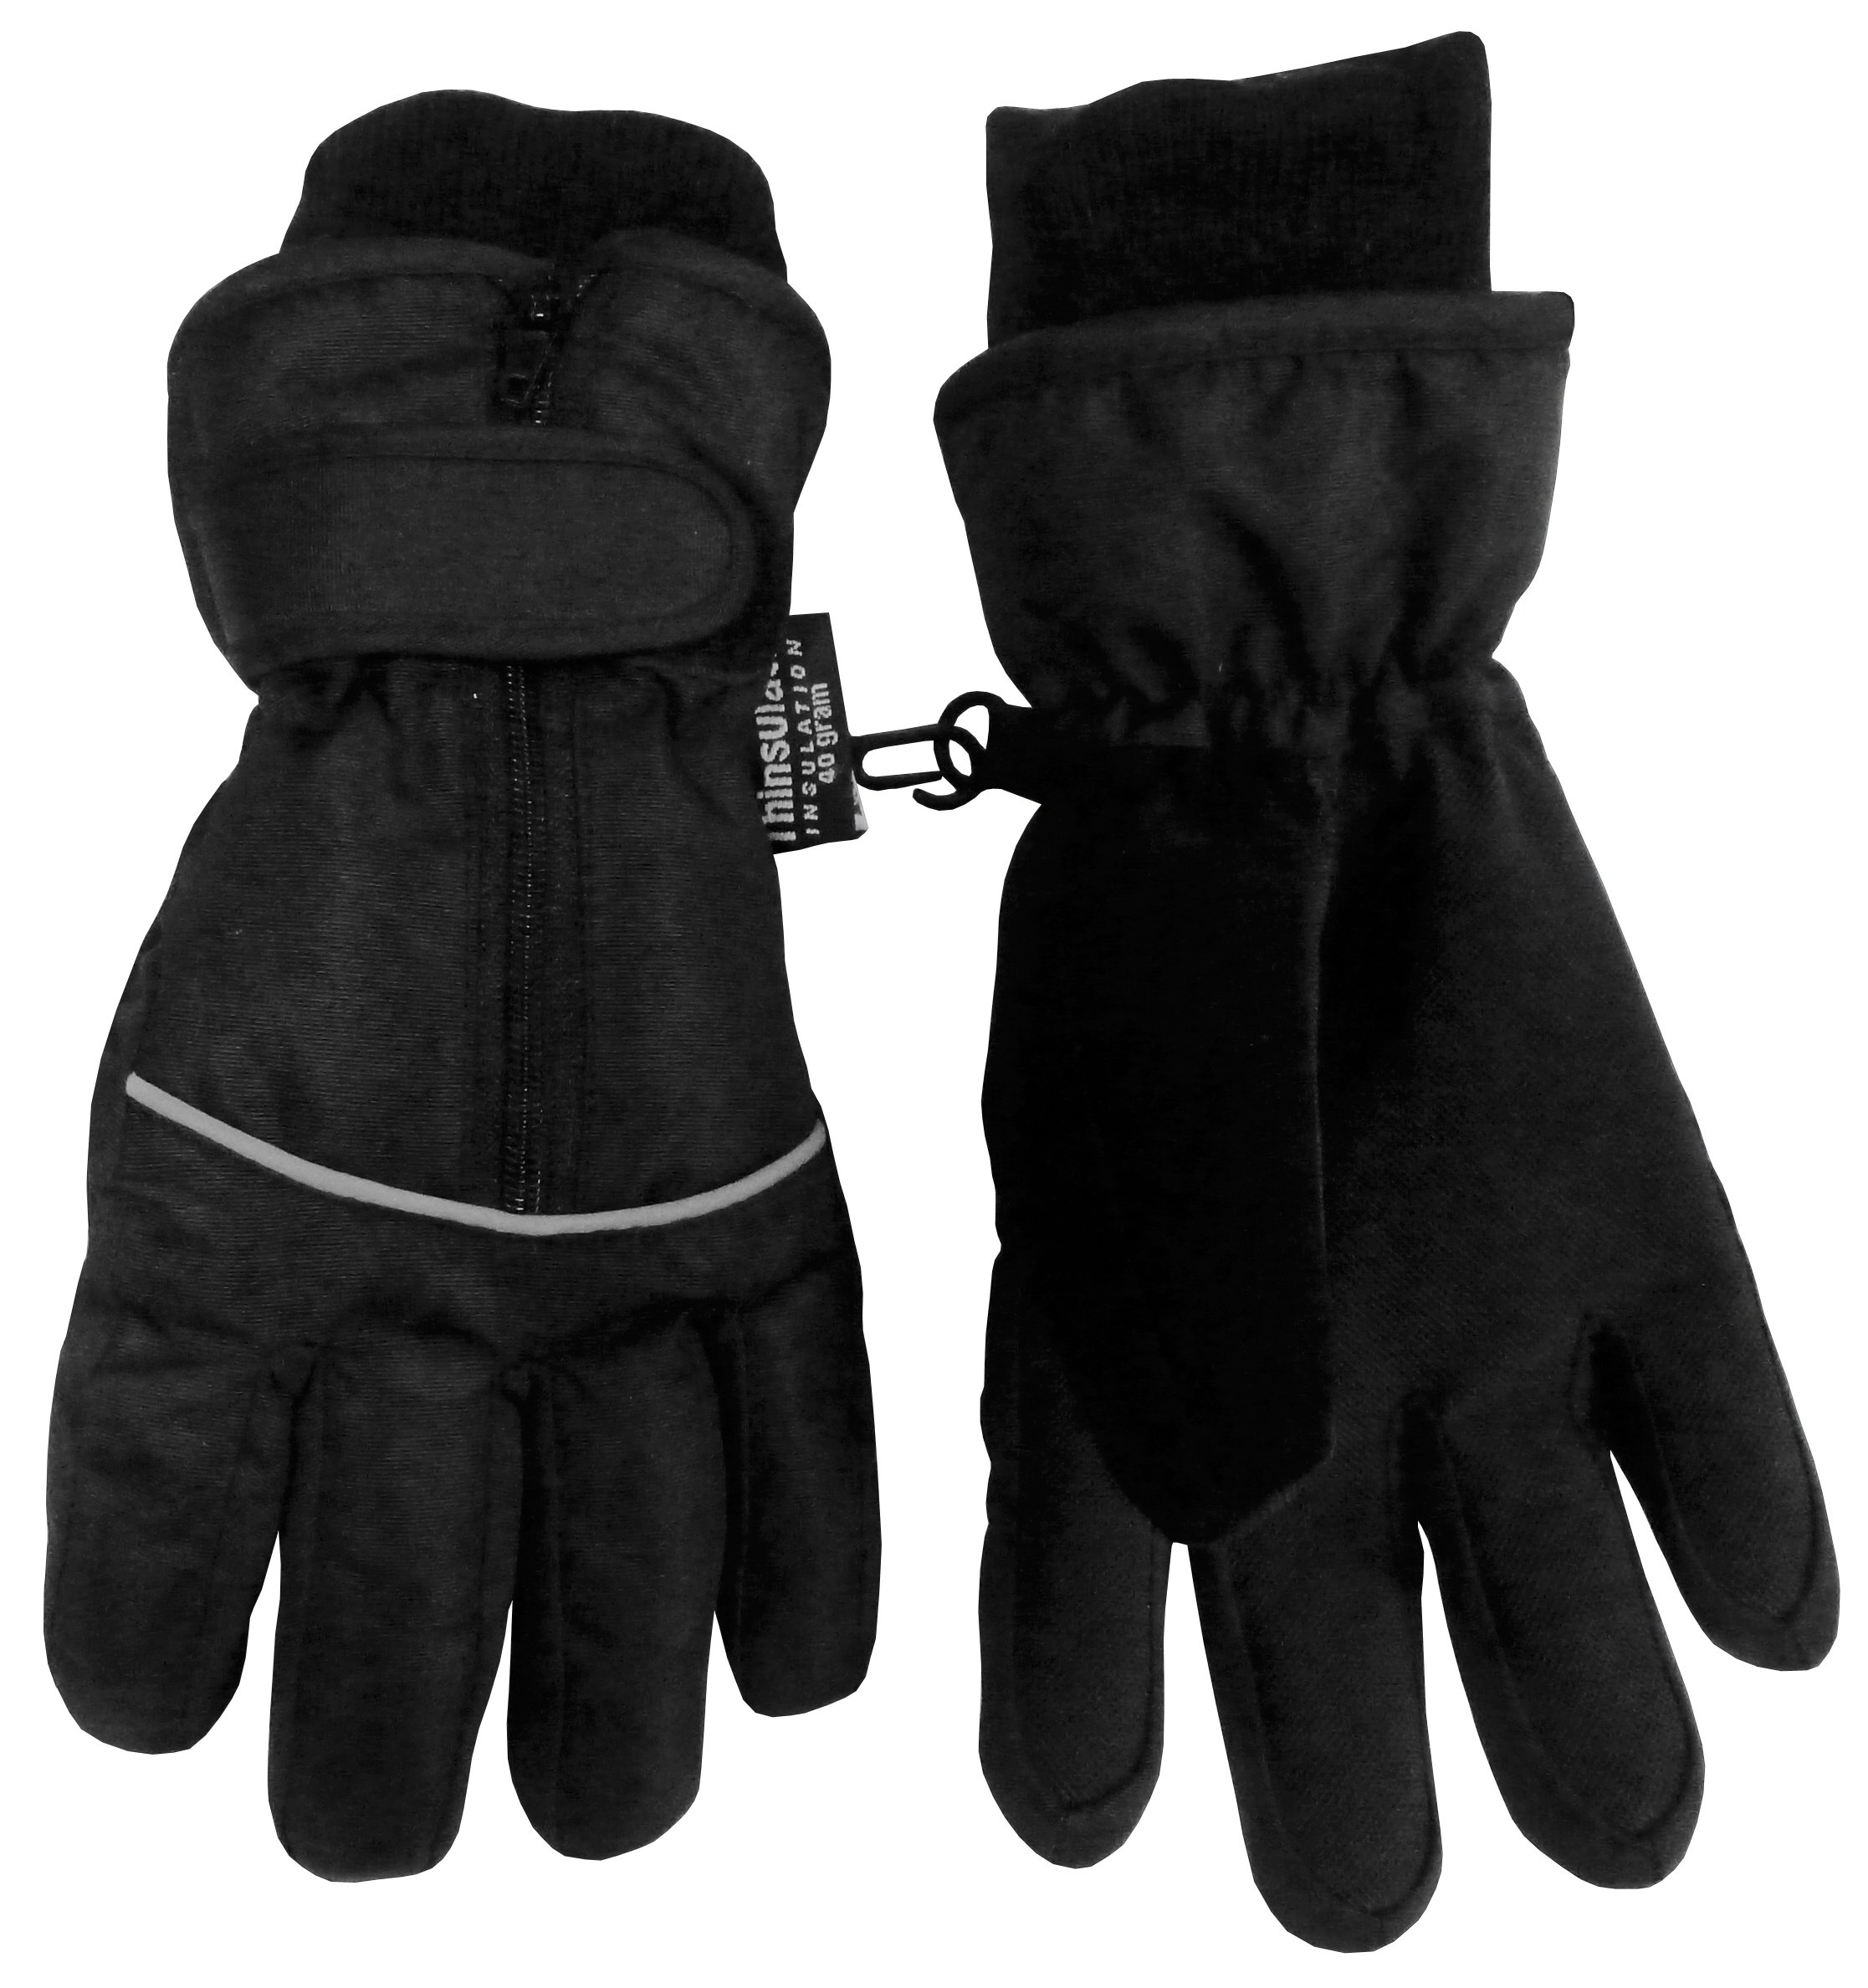 N'Ice Caps Kids Thinsulate and Waterproof Easy On Zip-Up Reflector Gloves (6-8yrs, Black)